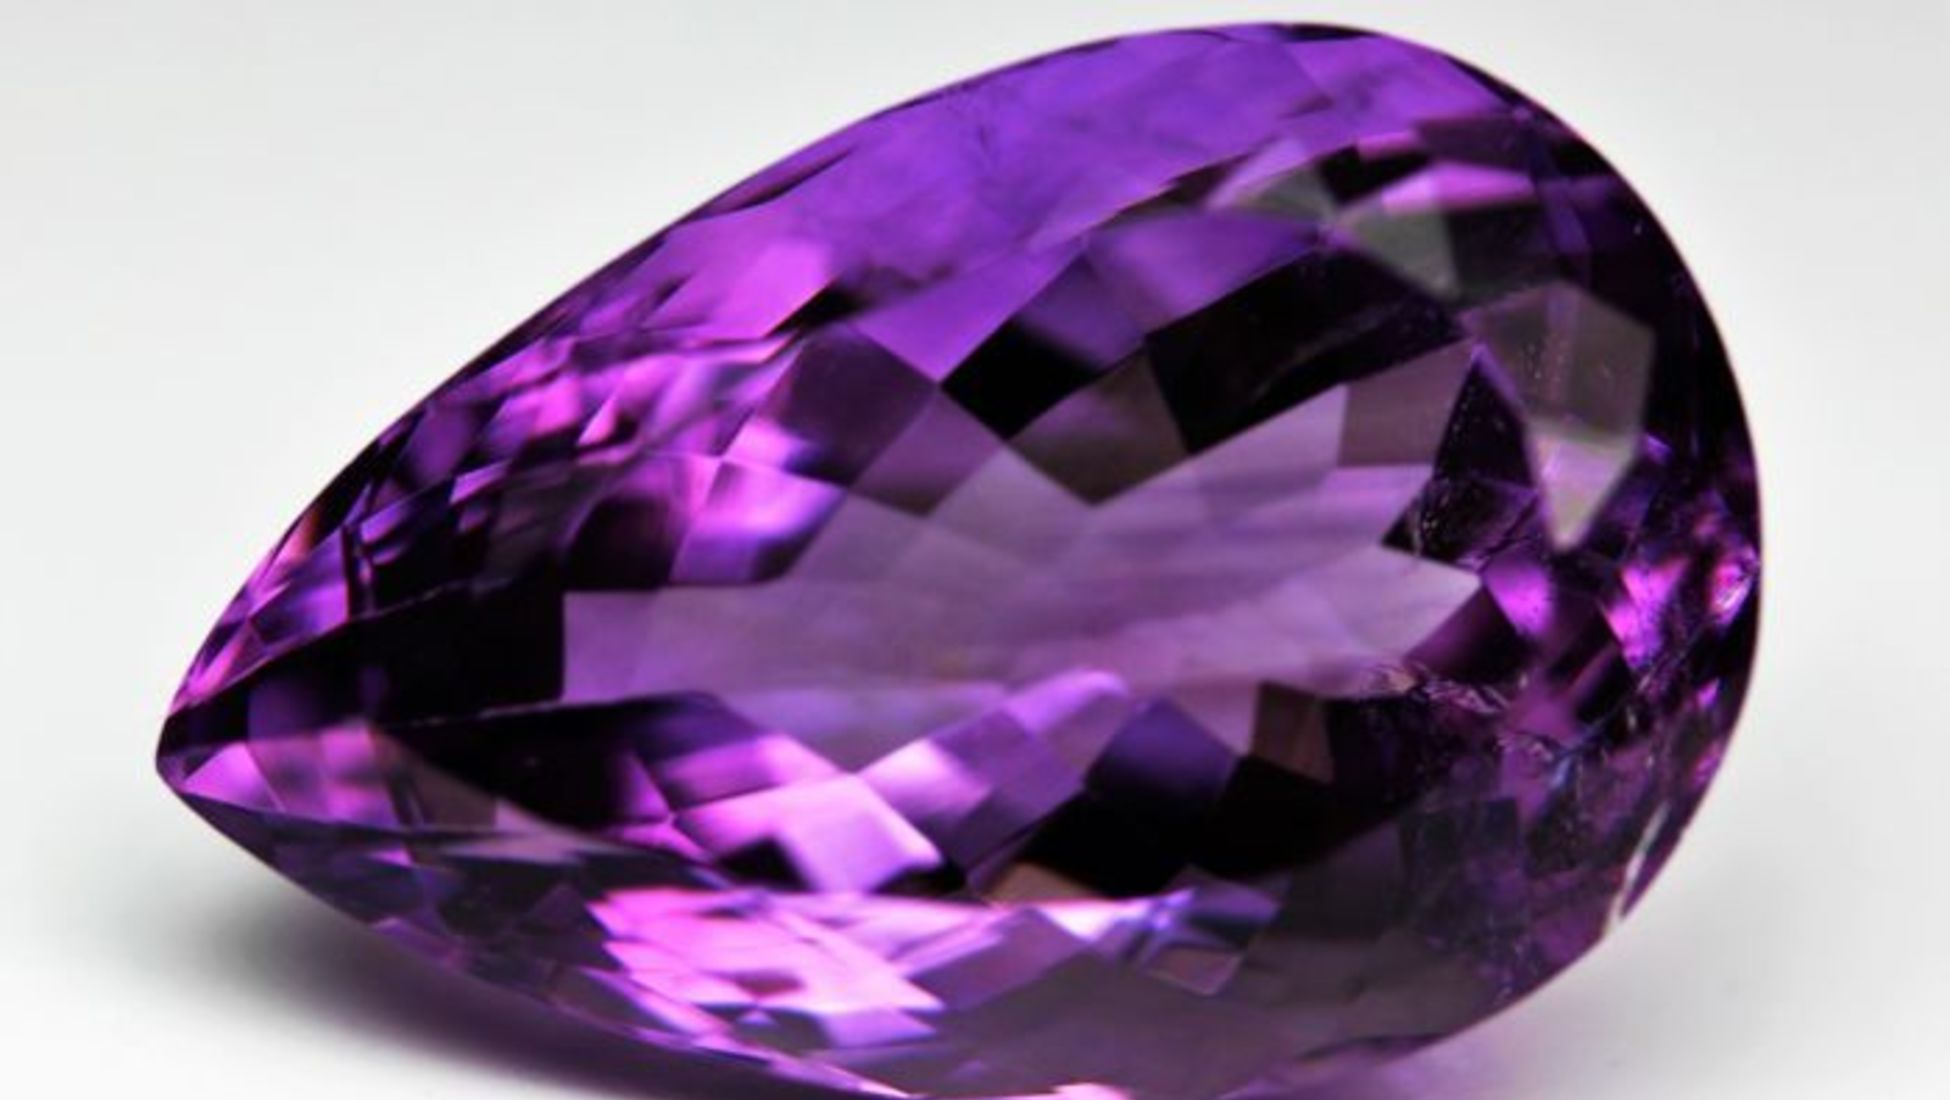 video violet pink motion stone background wedding gem videoblocks diamond ruby spinning gemstone loop